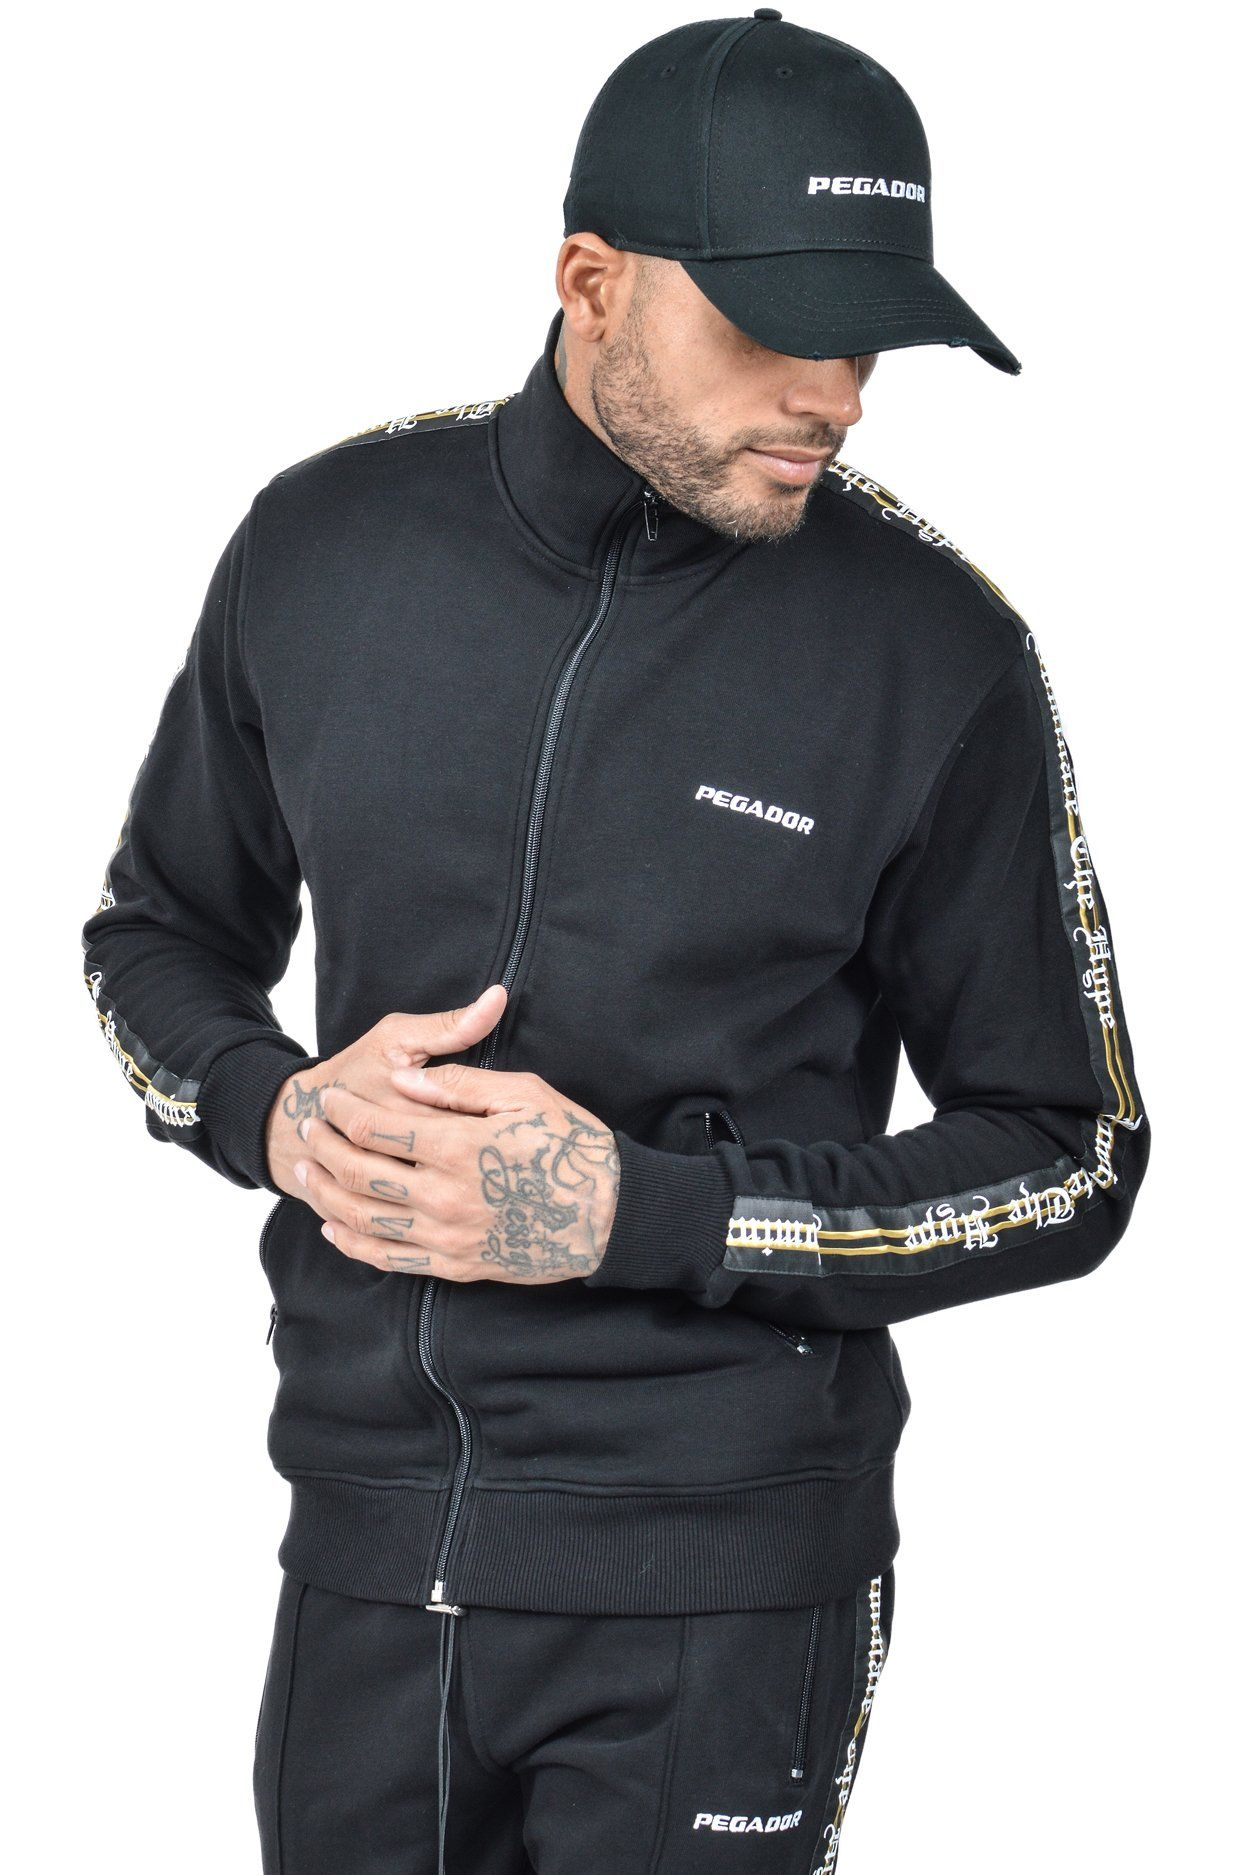 Plesto Sweat trackjacket Black